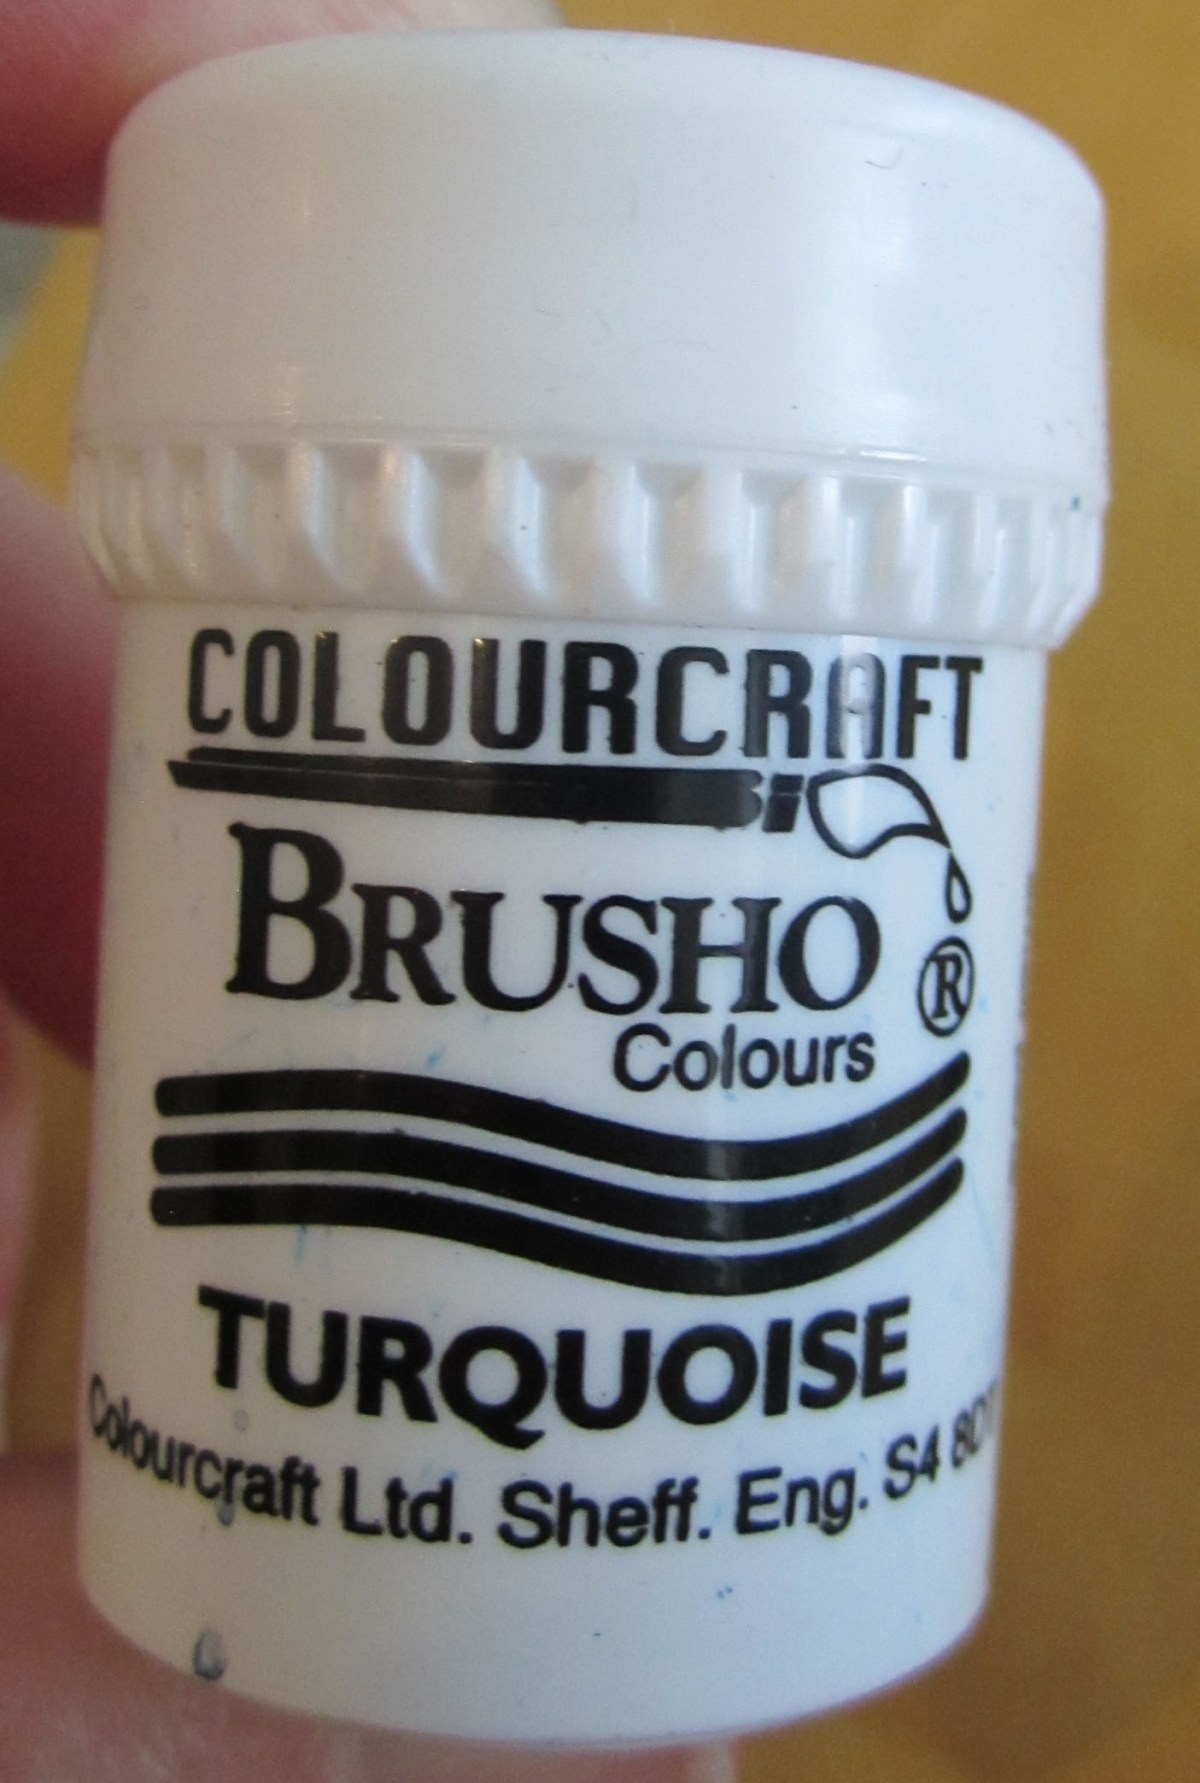 Brusho Crystal Colours Turquoise